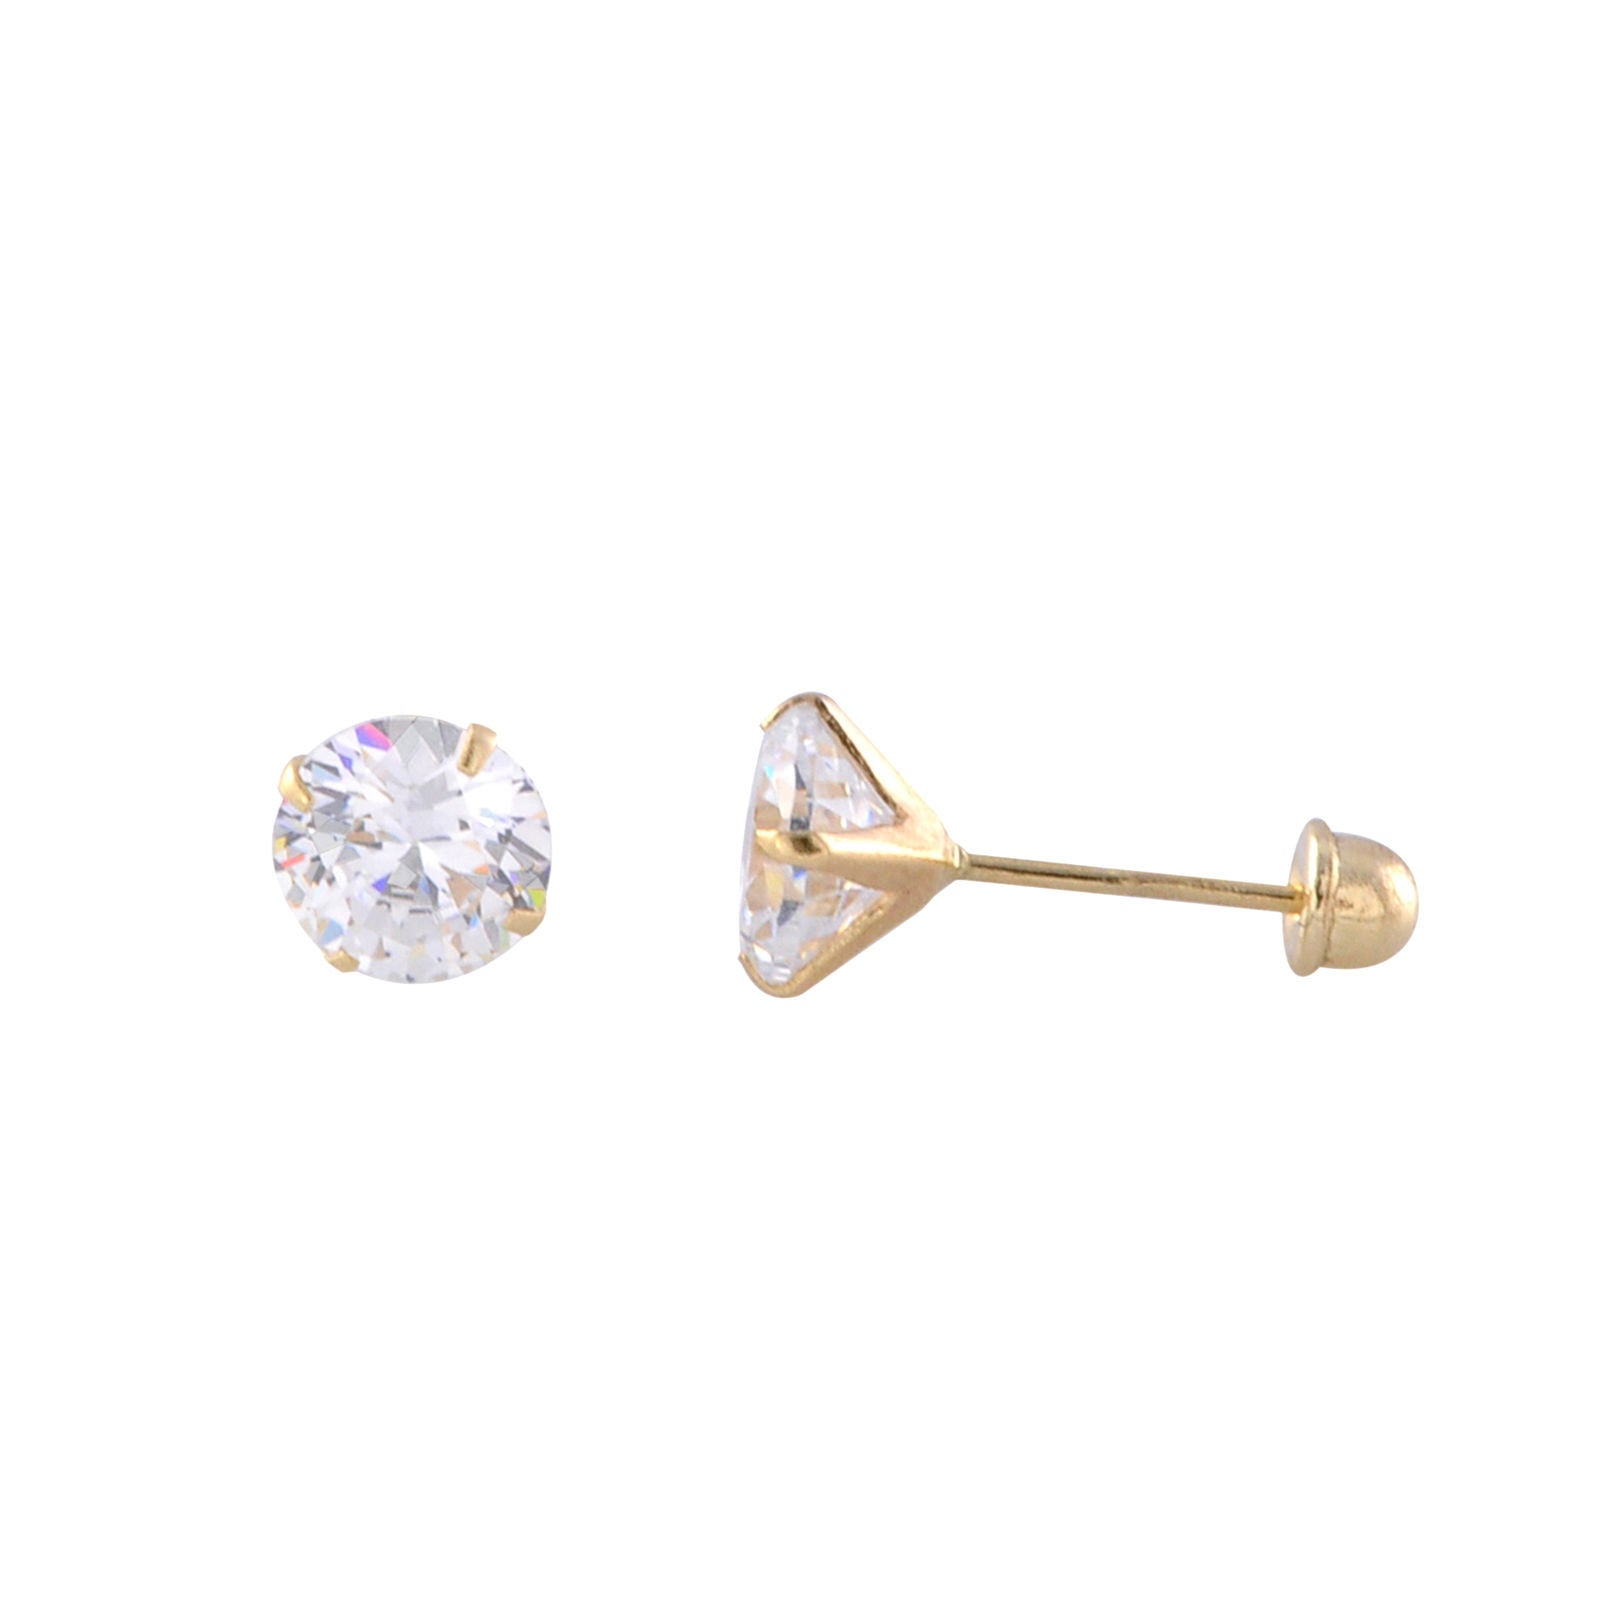 10k Yellow Gold Handmade Sculpted Cz Stud Earrings Round 4 Prong Martini  Setting